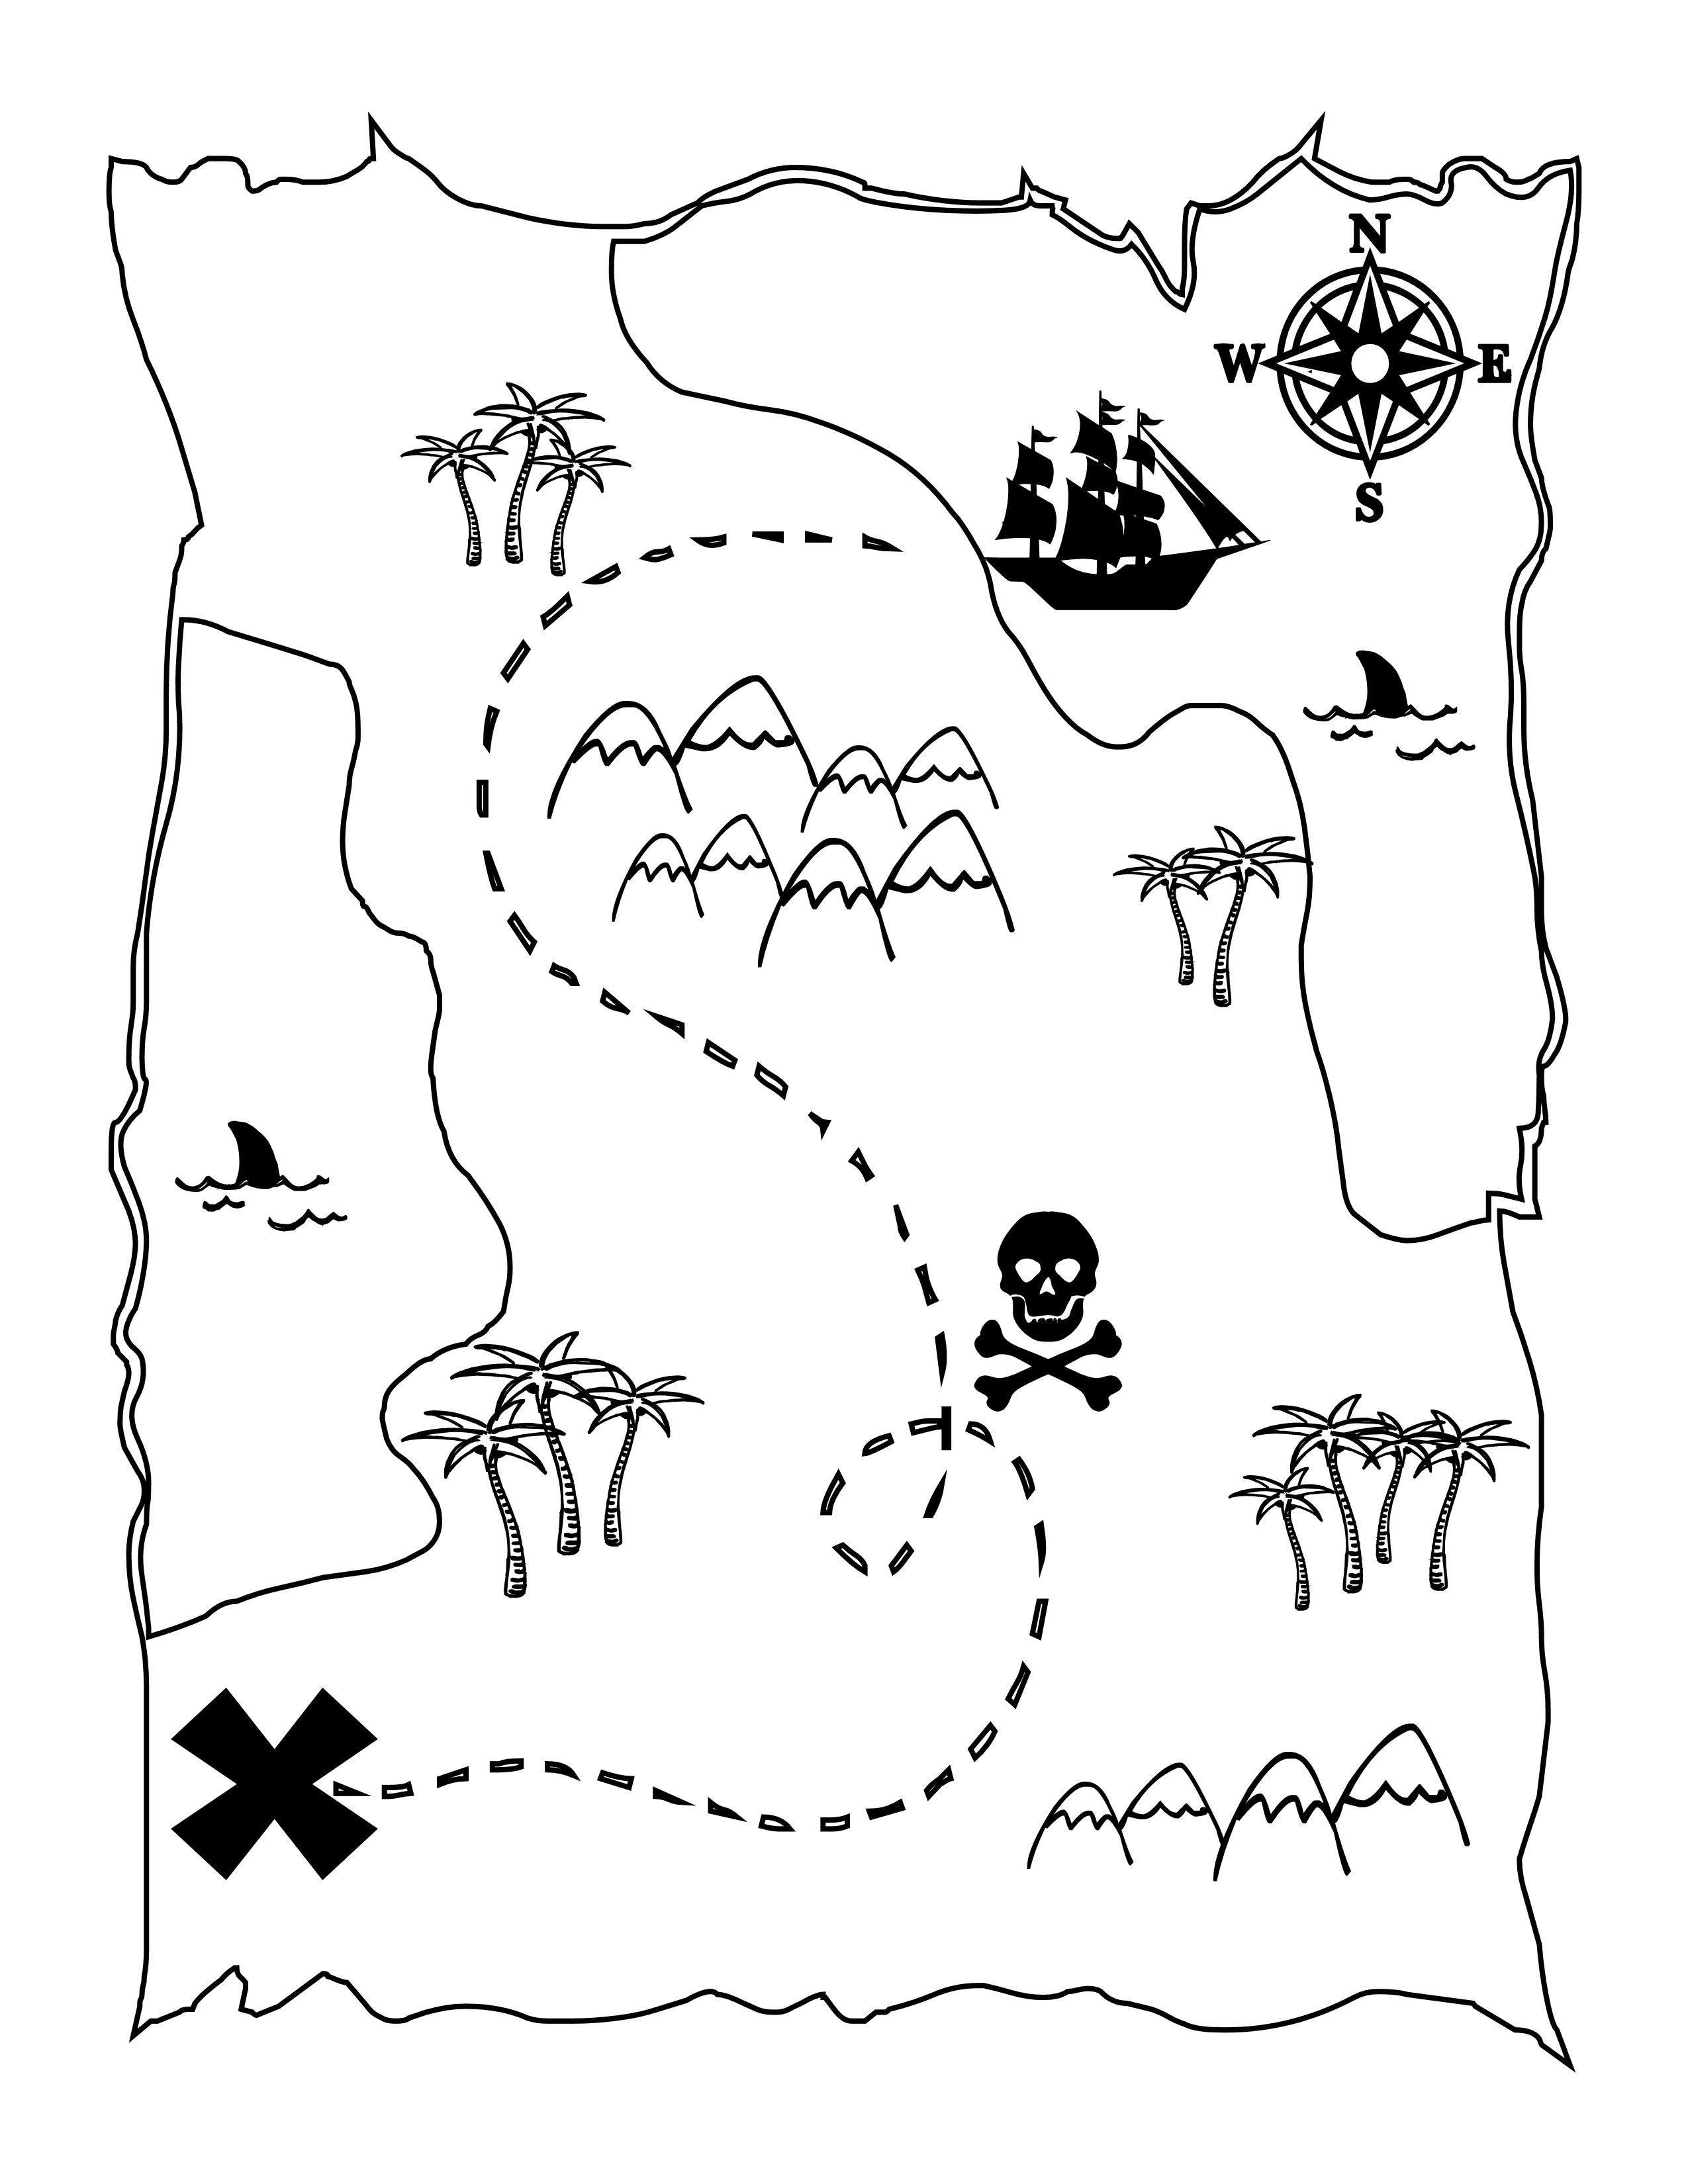 weather map coloring pages Collection-FREE Printable Pirate Map a fun coloring page for the kids lilluna  4-k